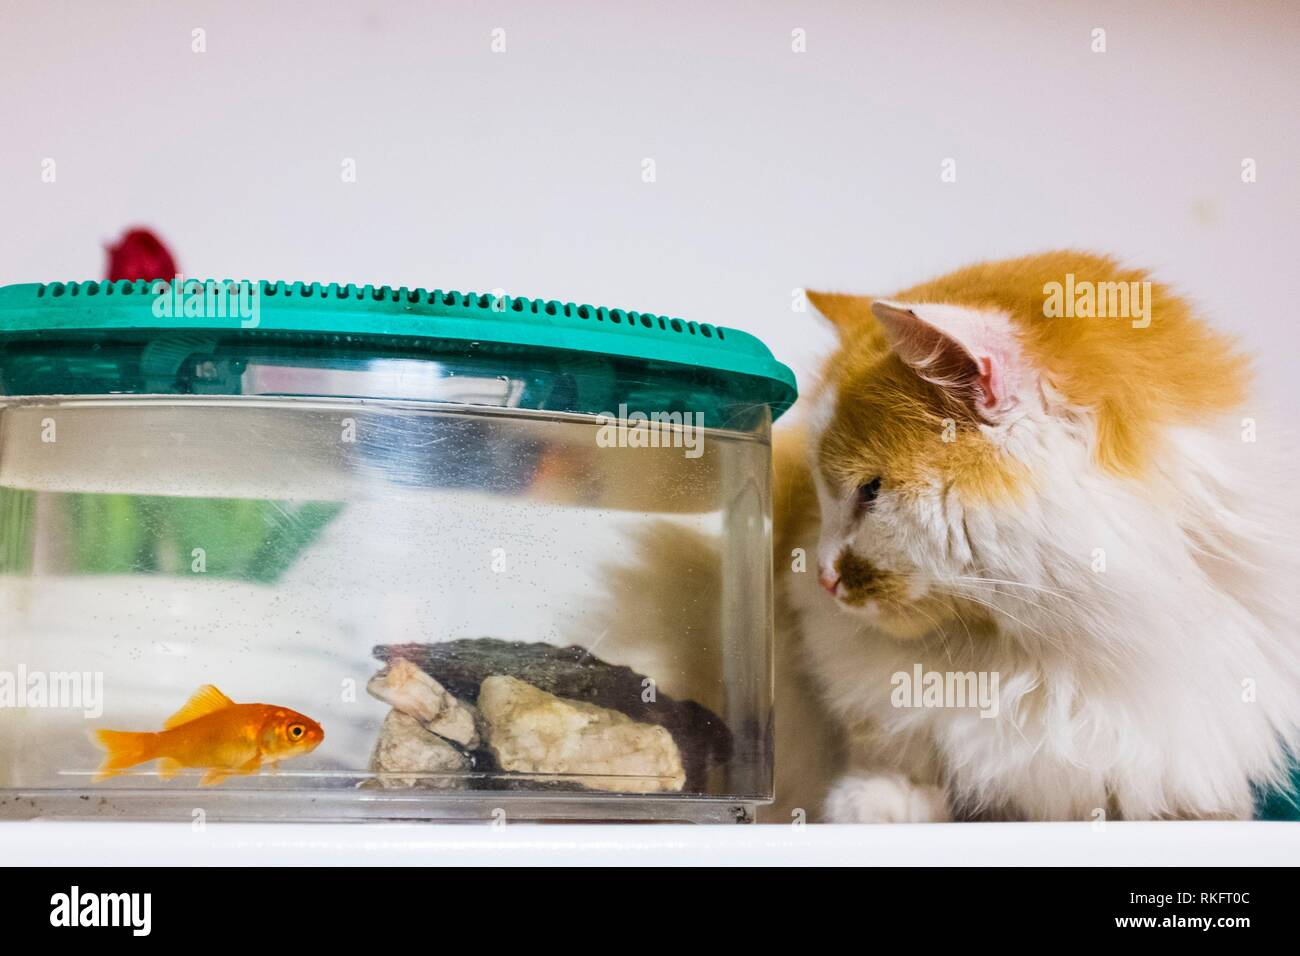 red and white cat looks with great curiosity goldfish in the aquarium at home. - Stock Image